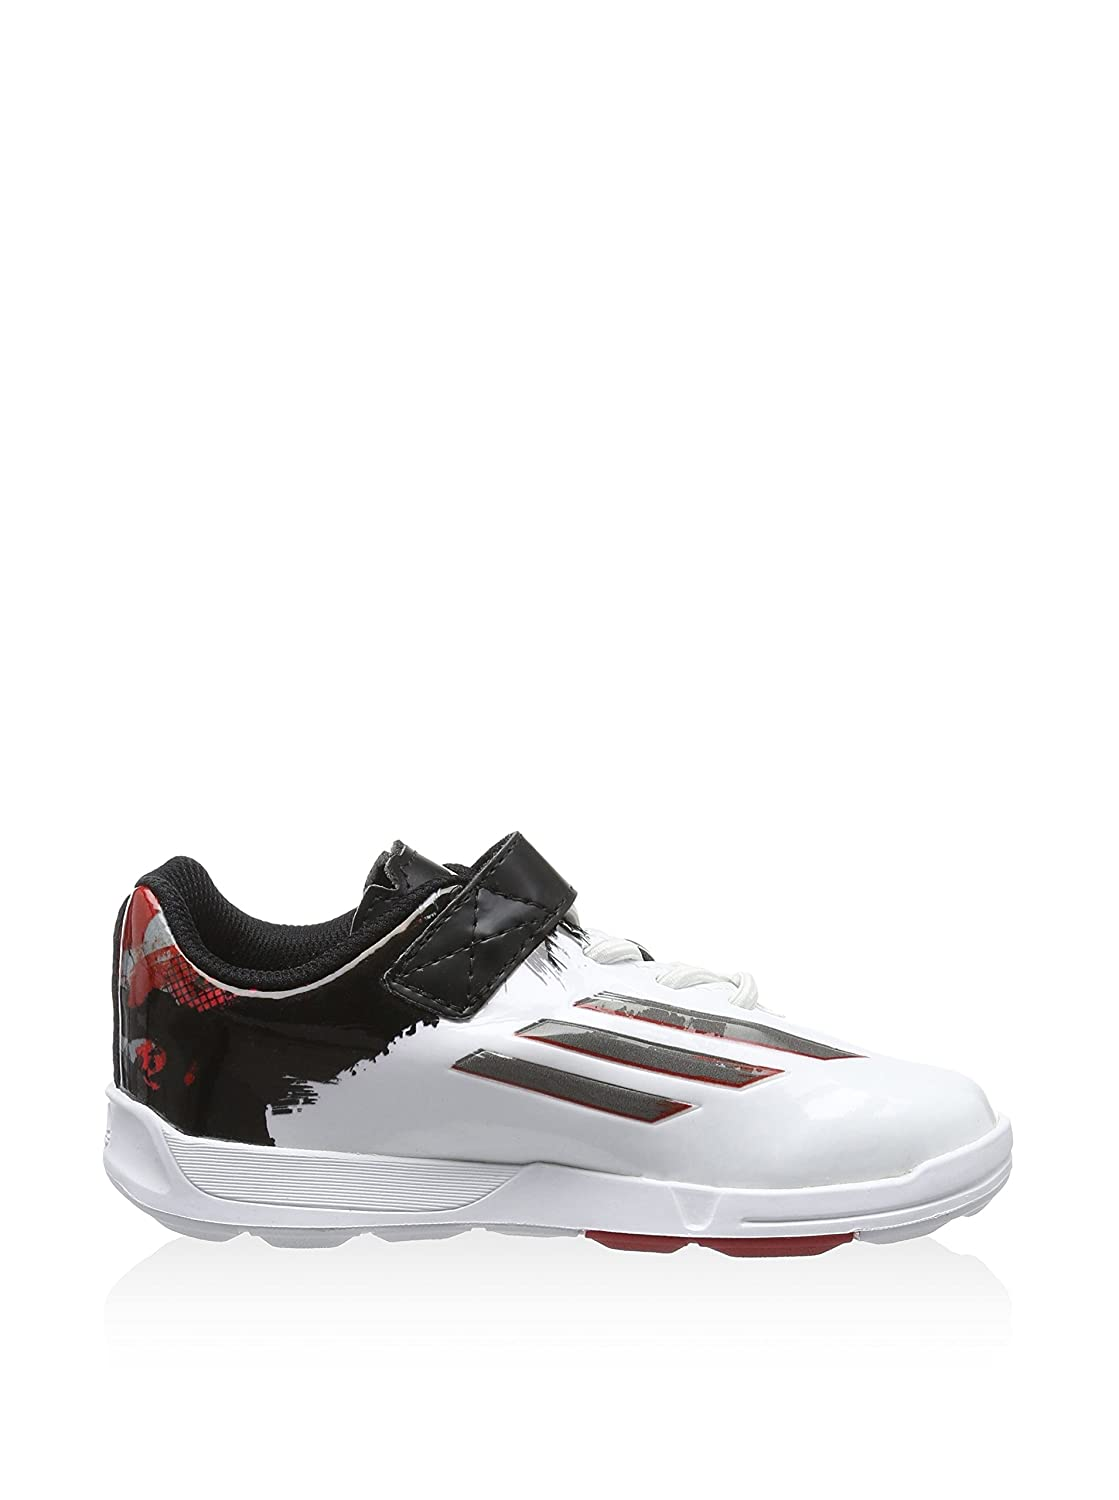 Adidas Zapatillas F10 TF J Blanco/Negro/Burdeos EU 22 (UK 5.5 C) 7p2E9H